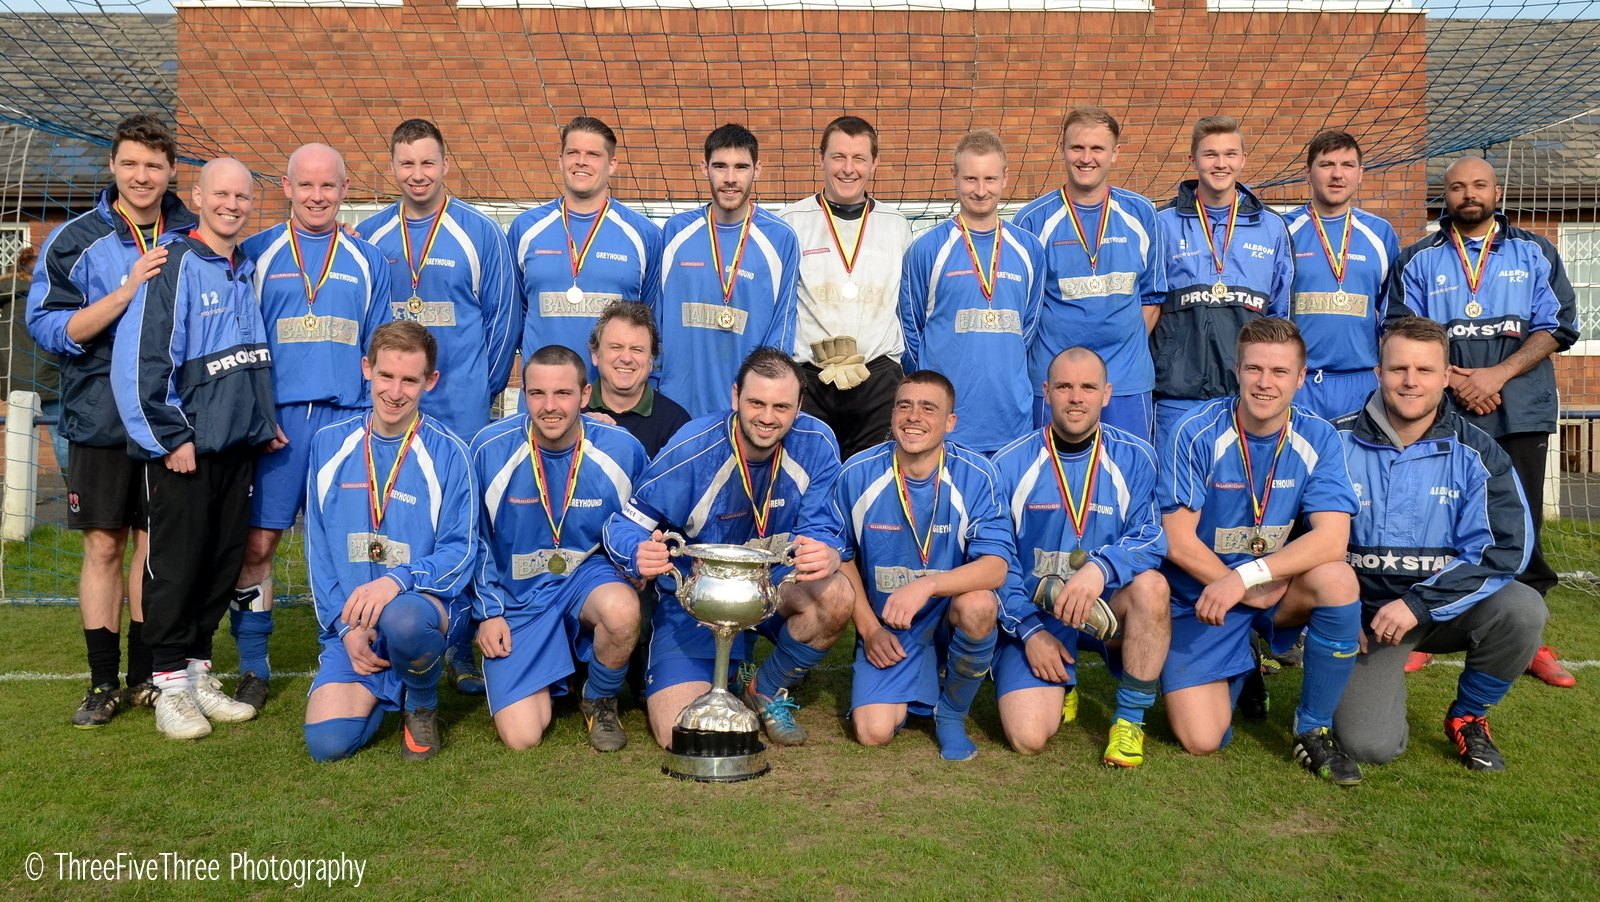 Netherton win the cup